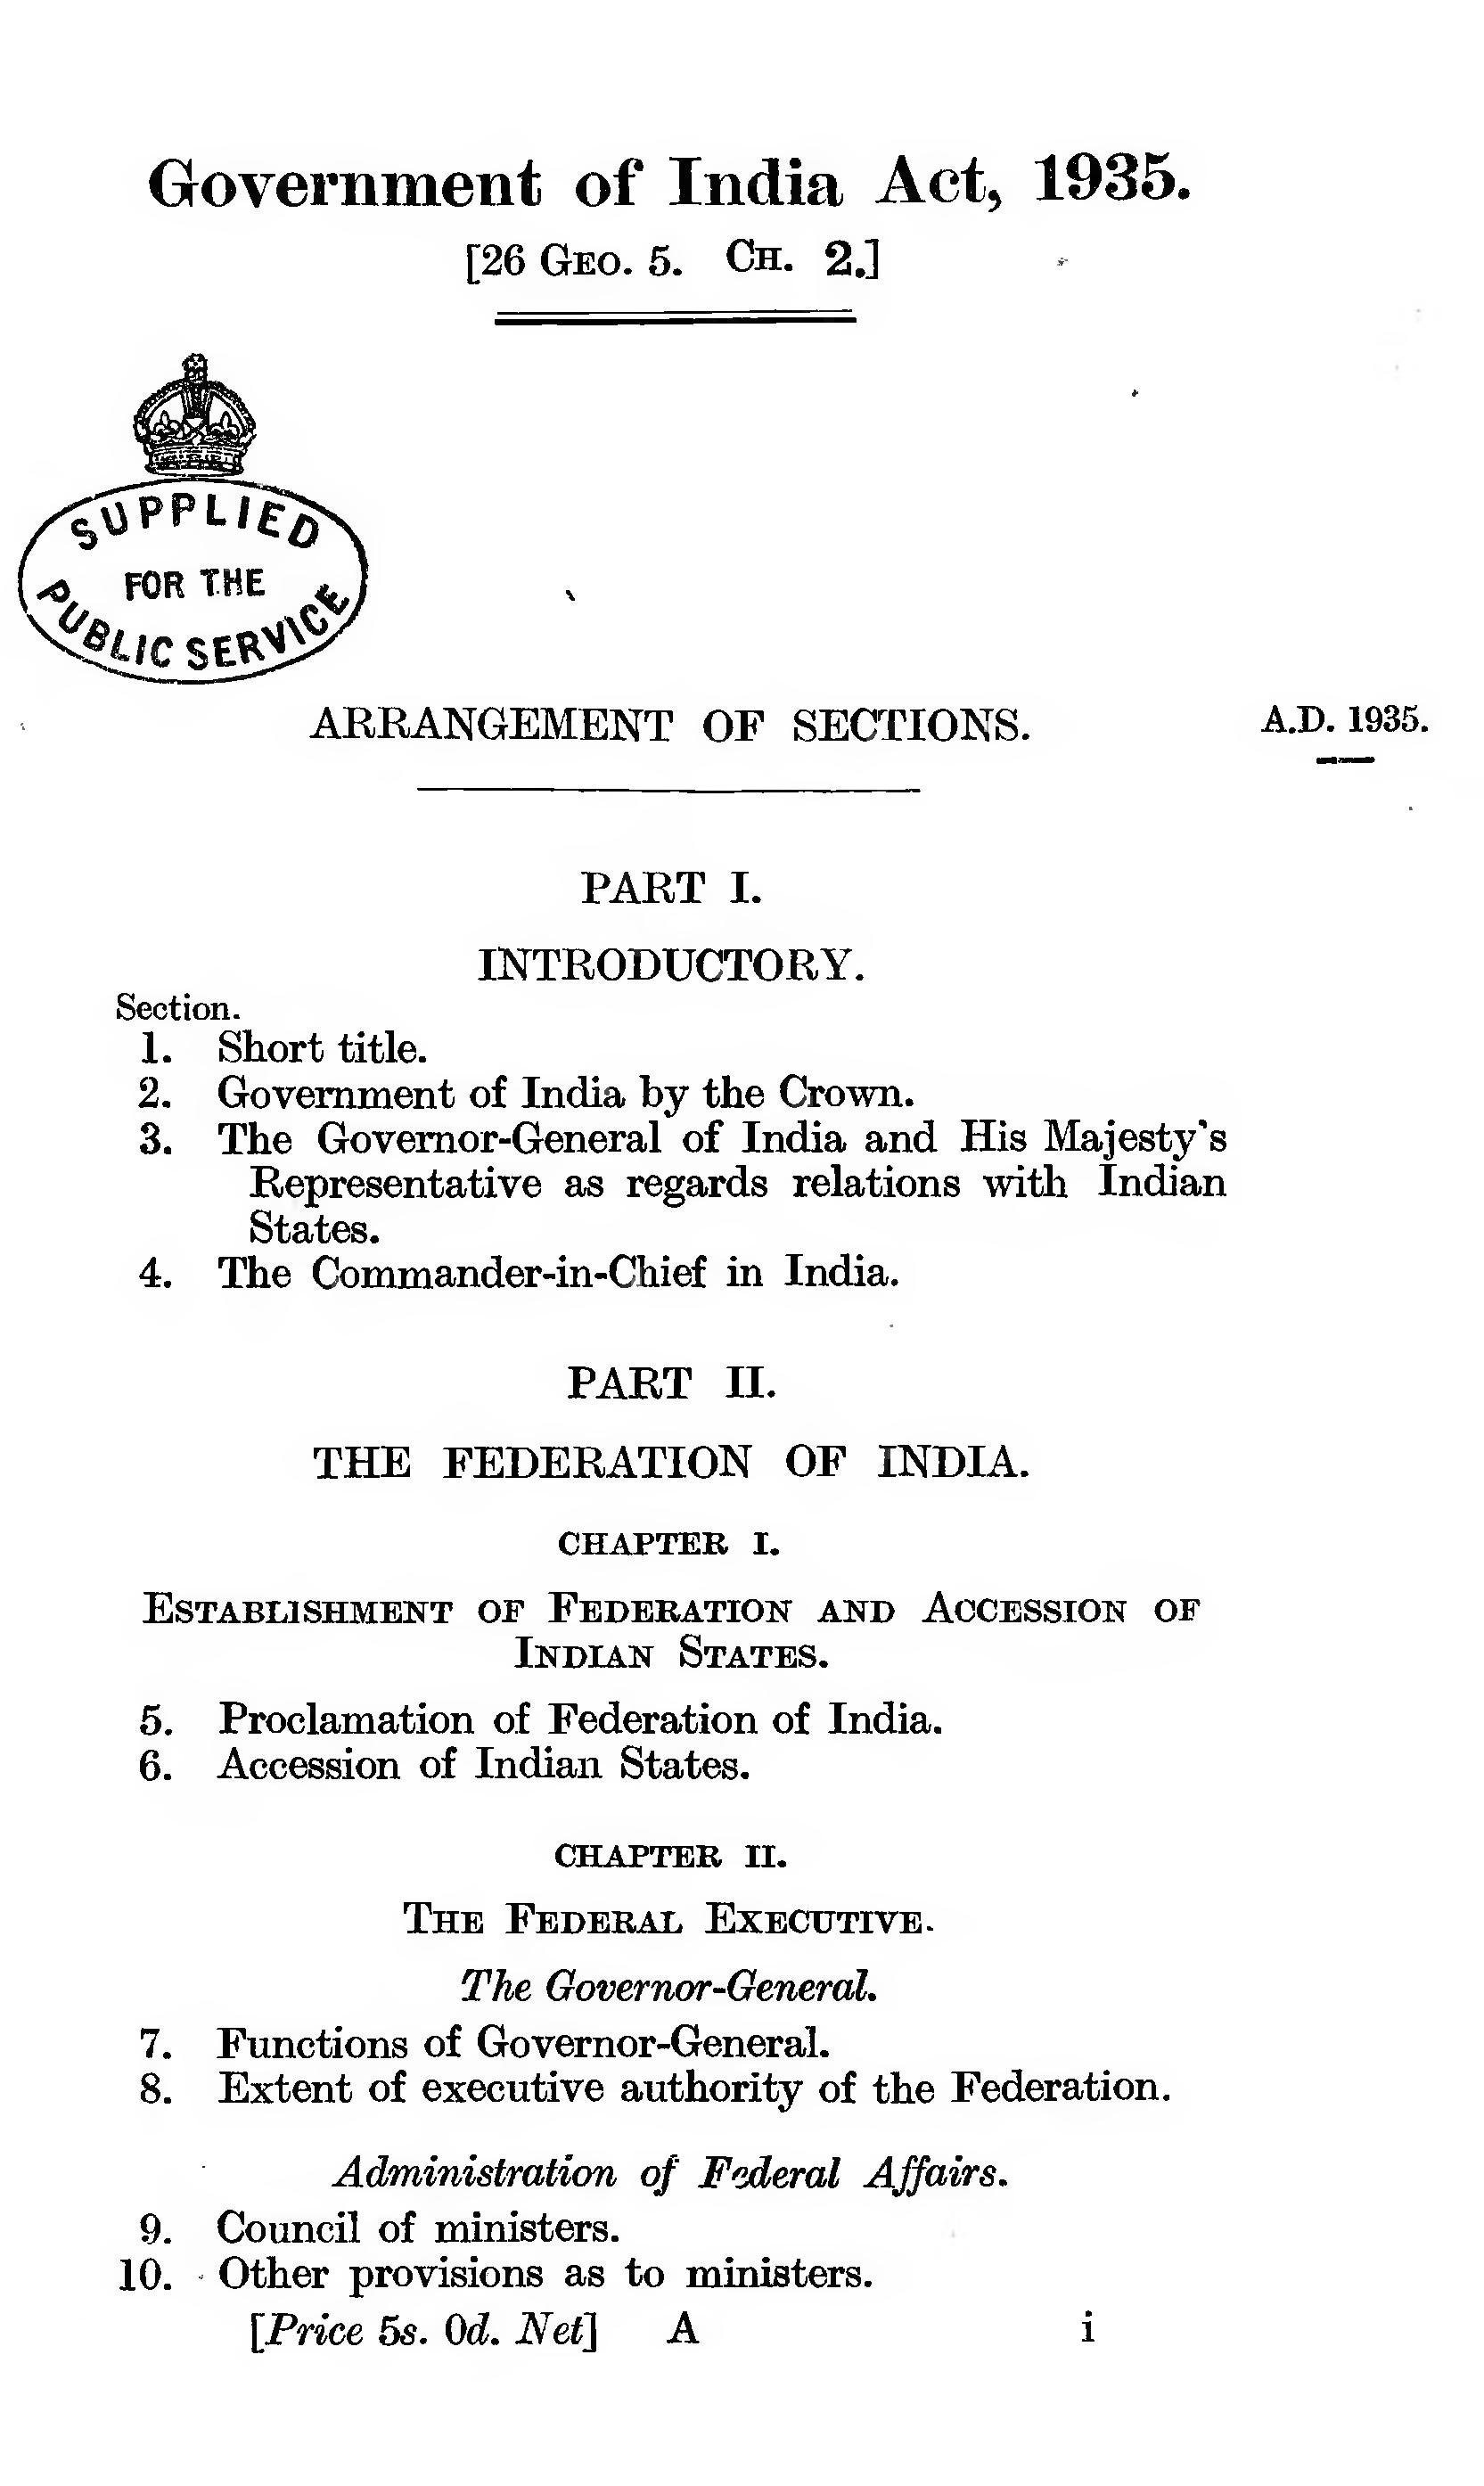 Description: Image result for government of india act 1935